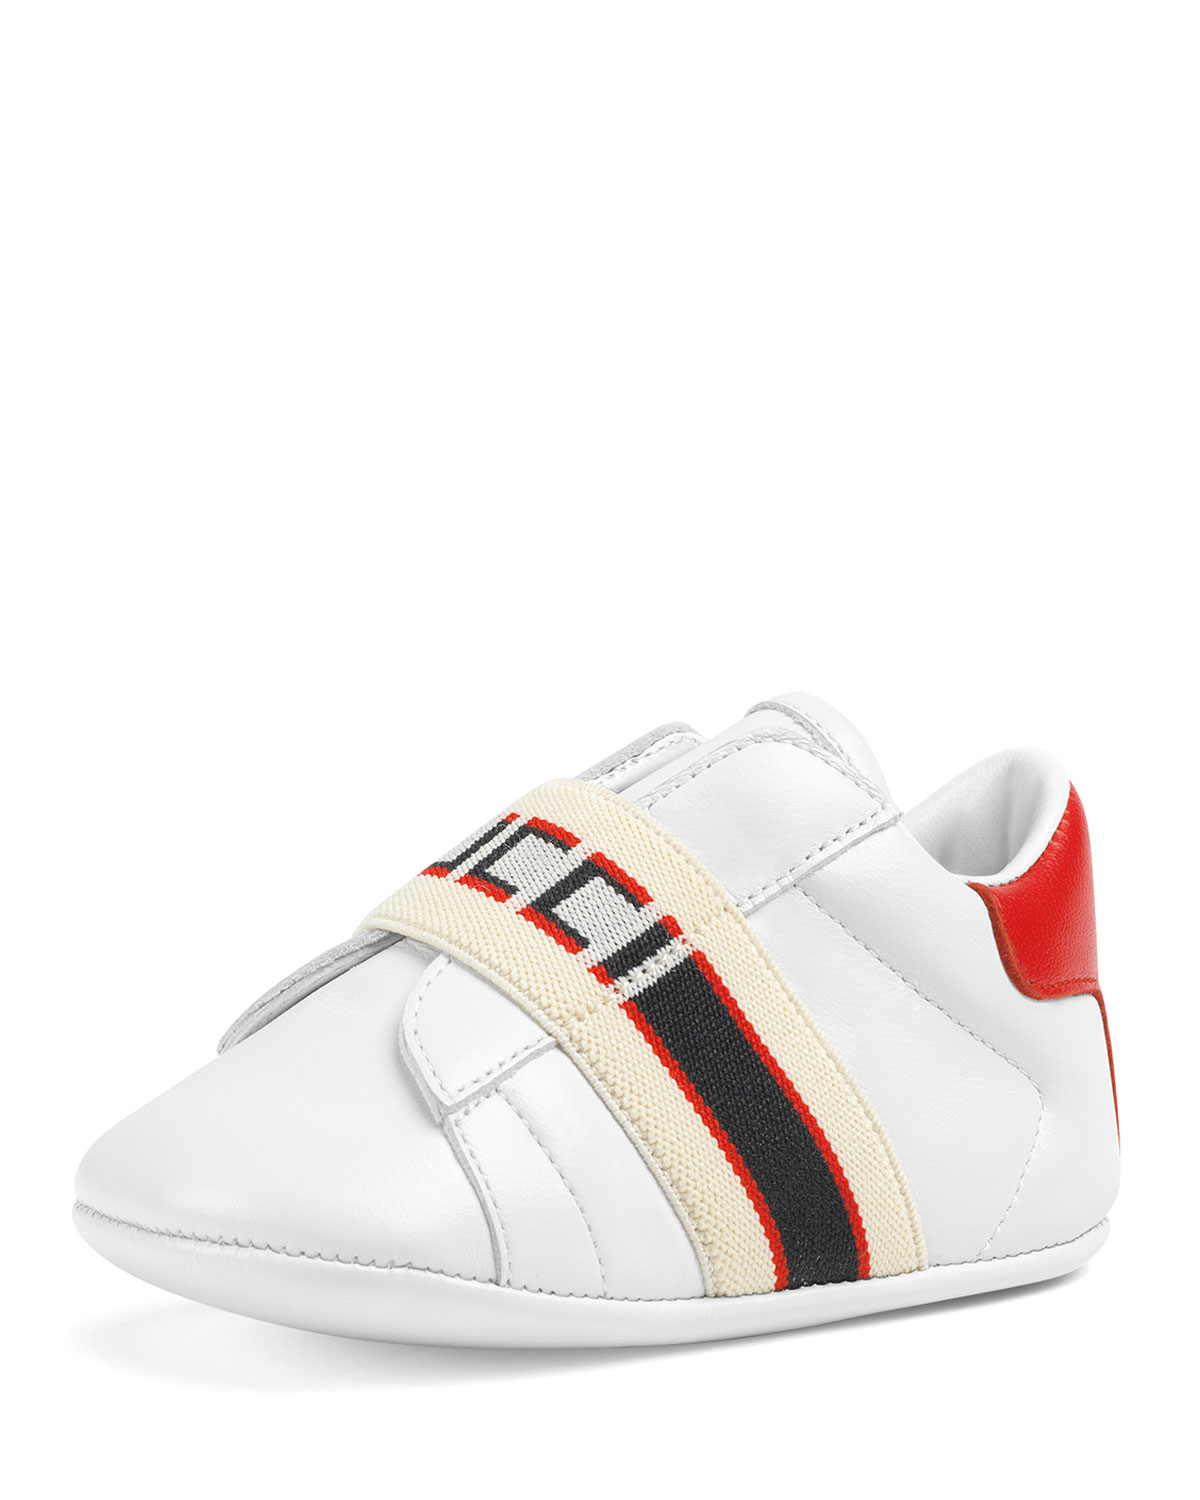 080db6dd5 Gucci New Ace Gucci Band Leather Sneakers, Baby/Toddler | Neiman Marcus